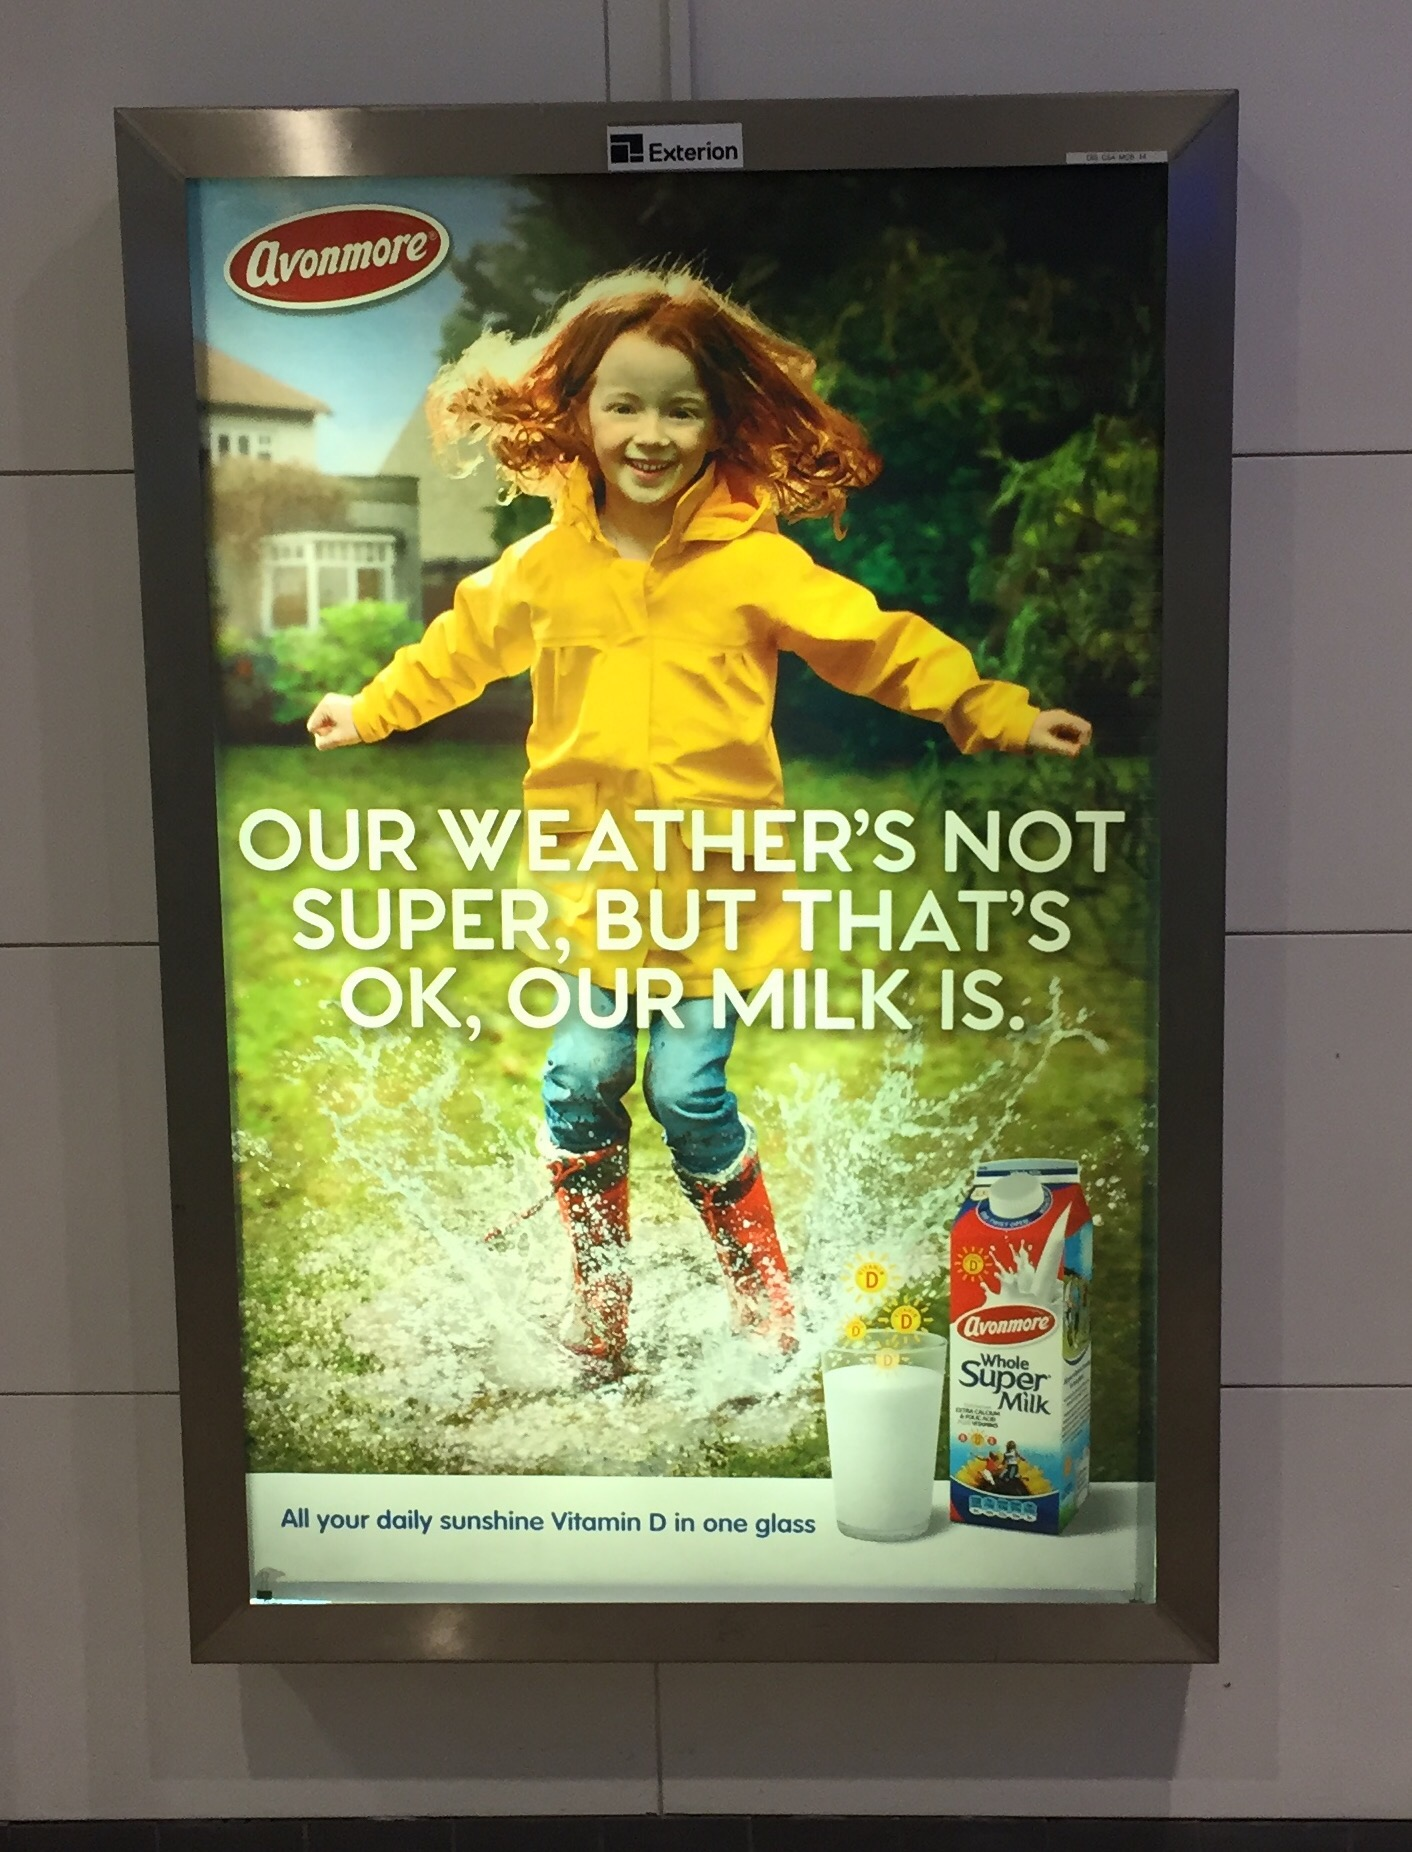 Avonmore Super Milk – our weather's not super but that's ok, our milk is